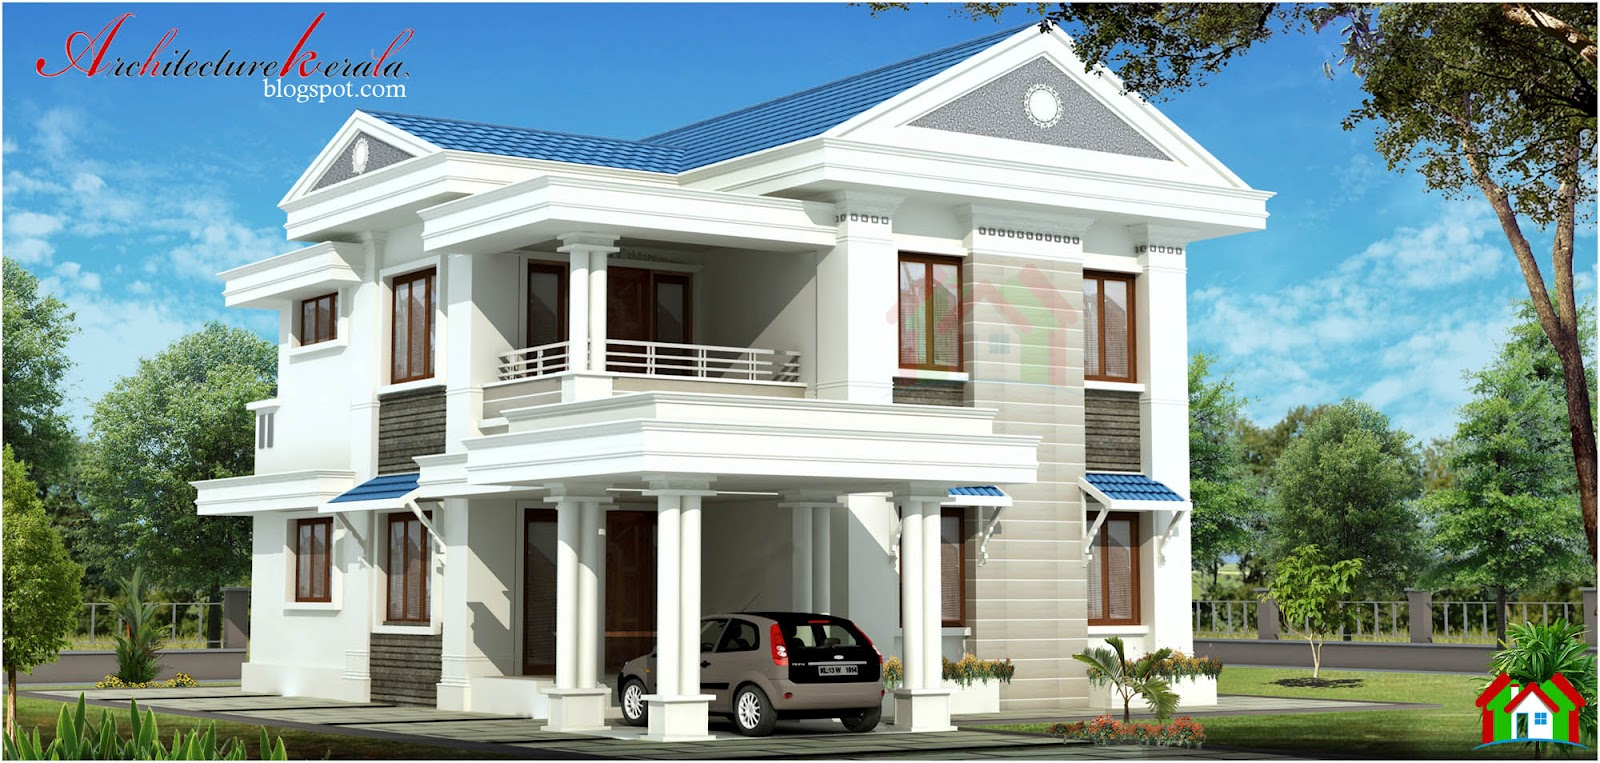 Good Looking Houses Pictures House And Home Design